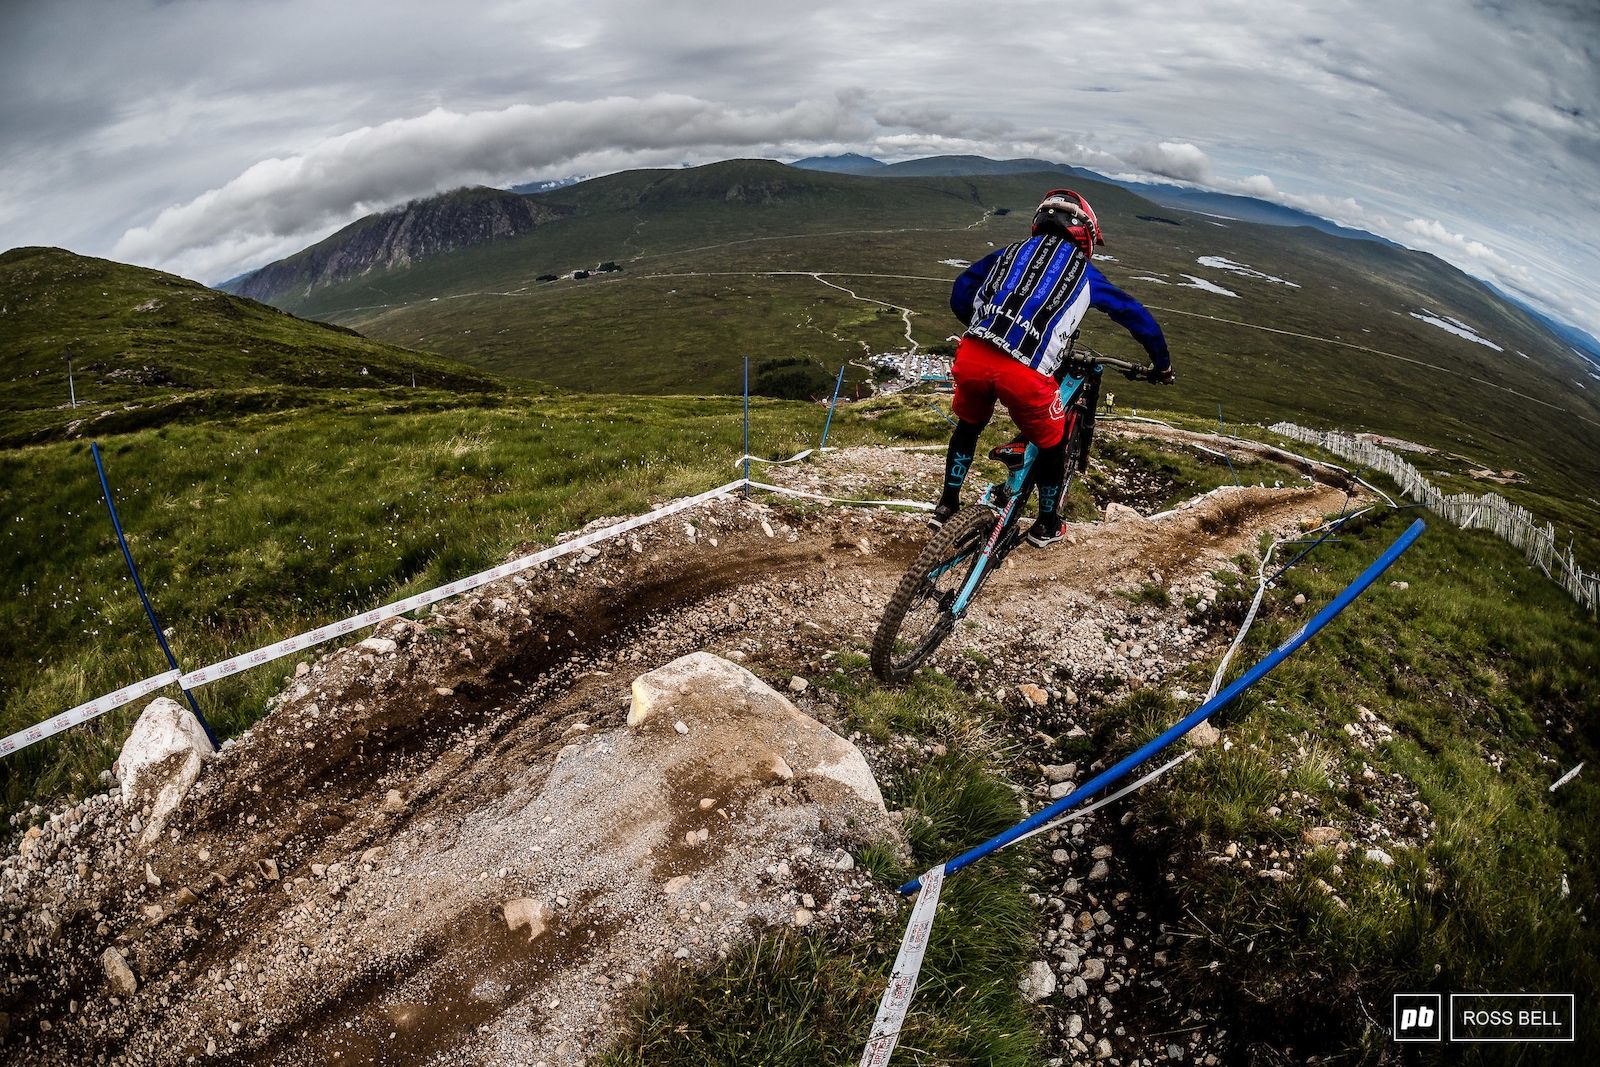 William Brodie hitting send on a tricky gap that caught out plenty of riders all weekend.